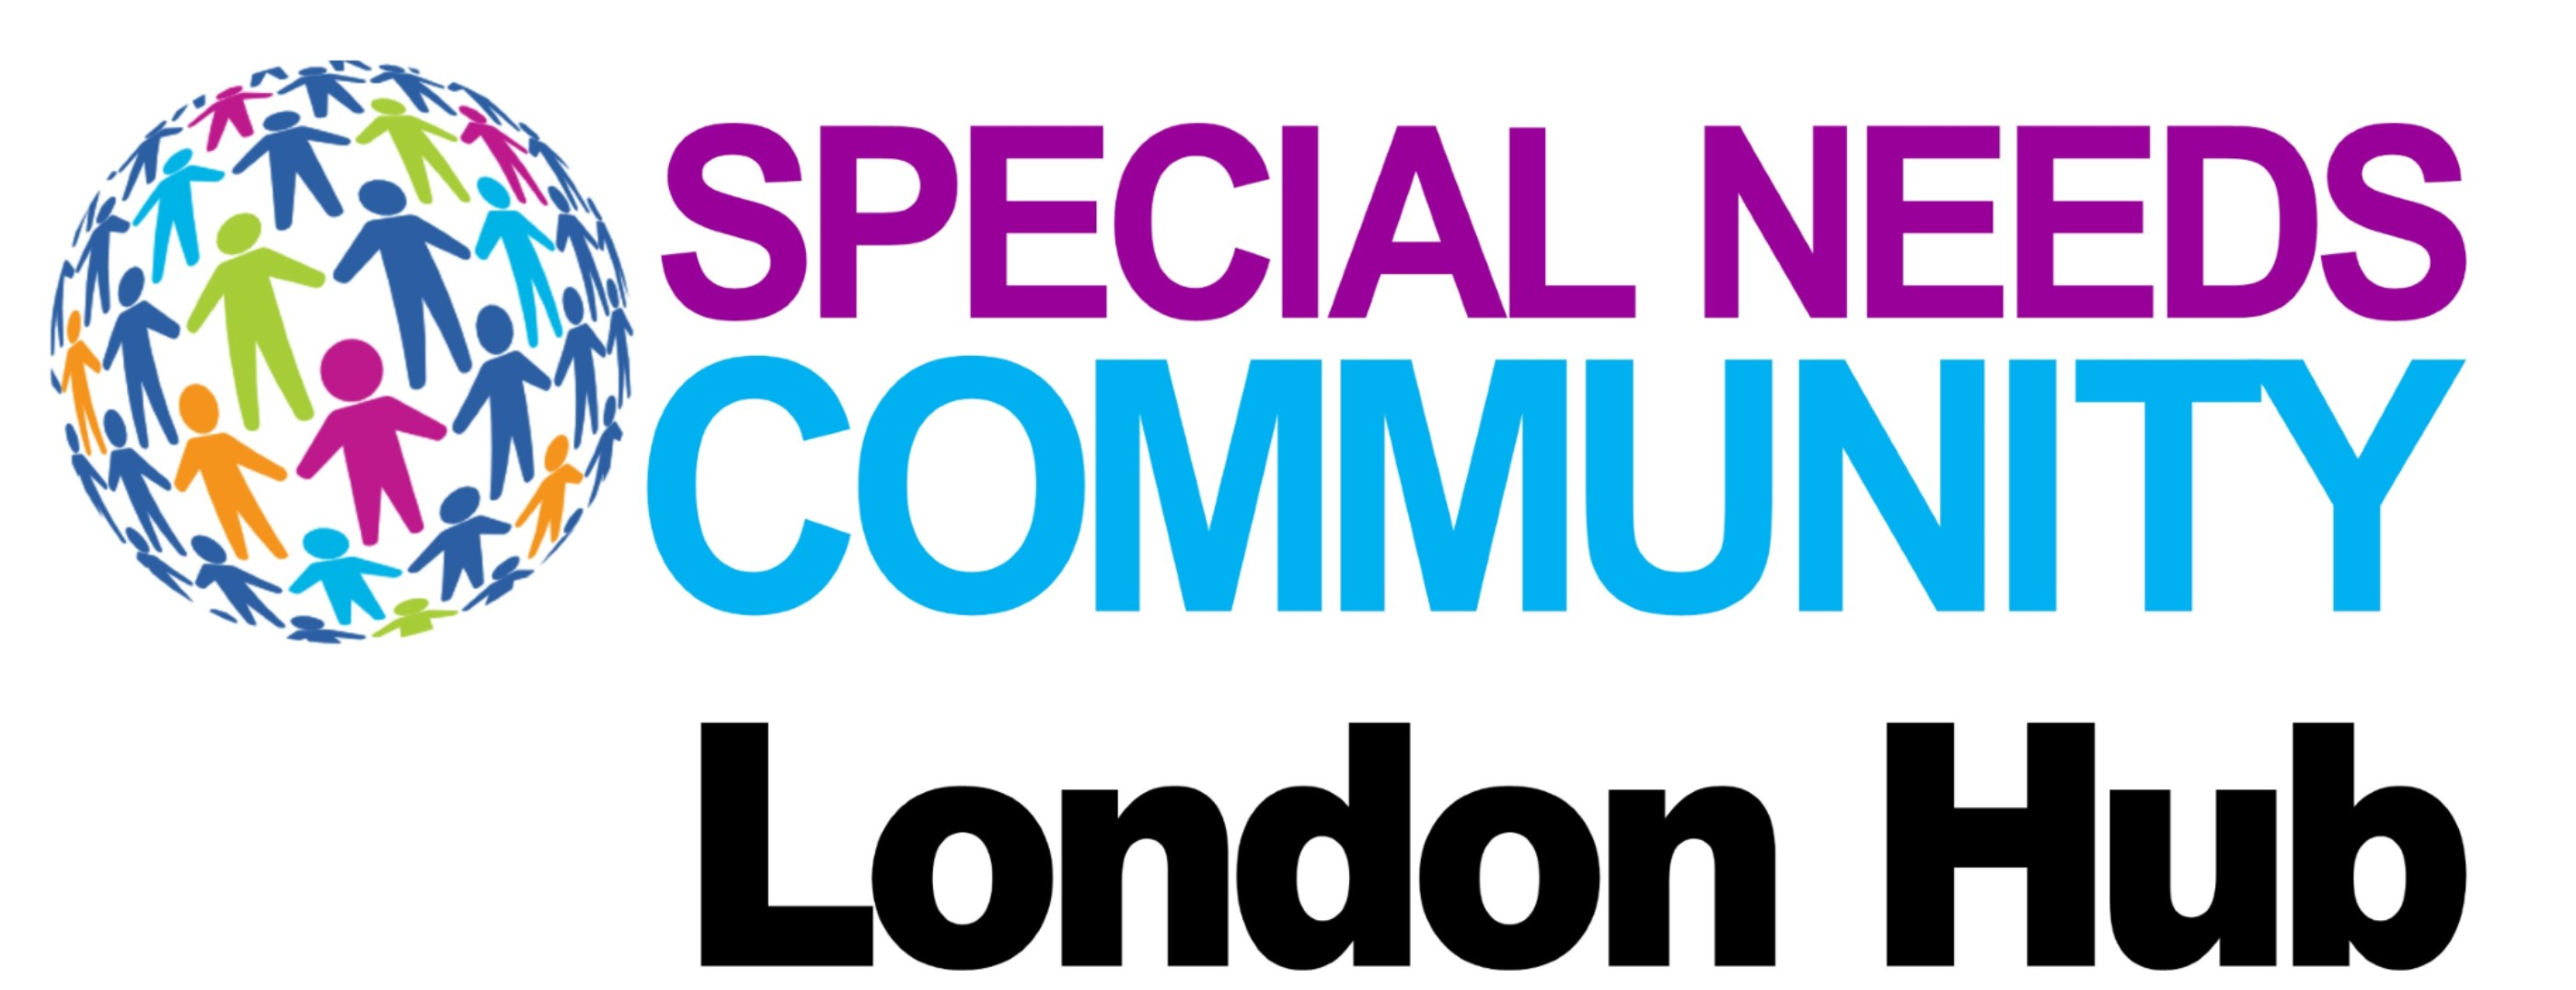 SPECIAL NEEDS COMMUNITY LONDON HUB